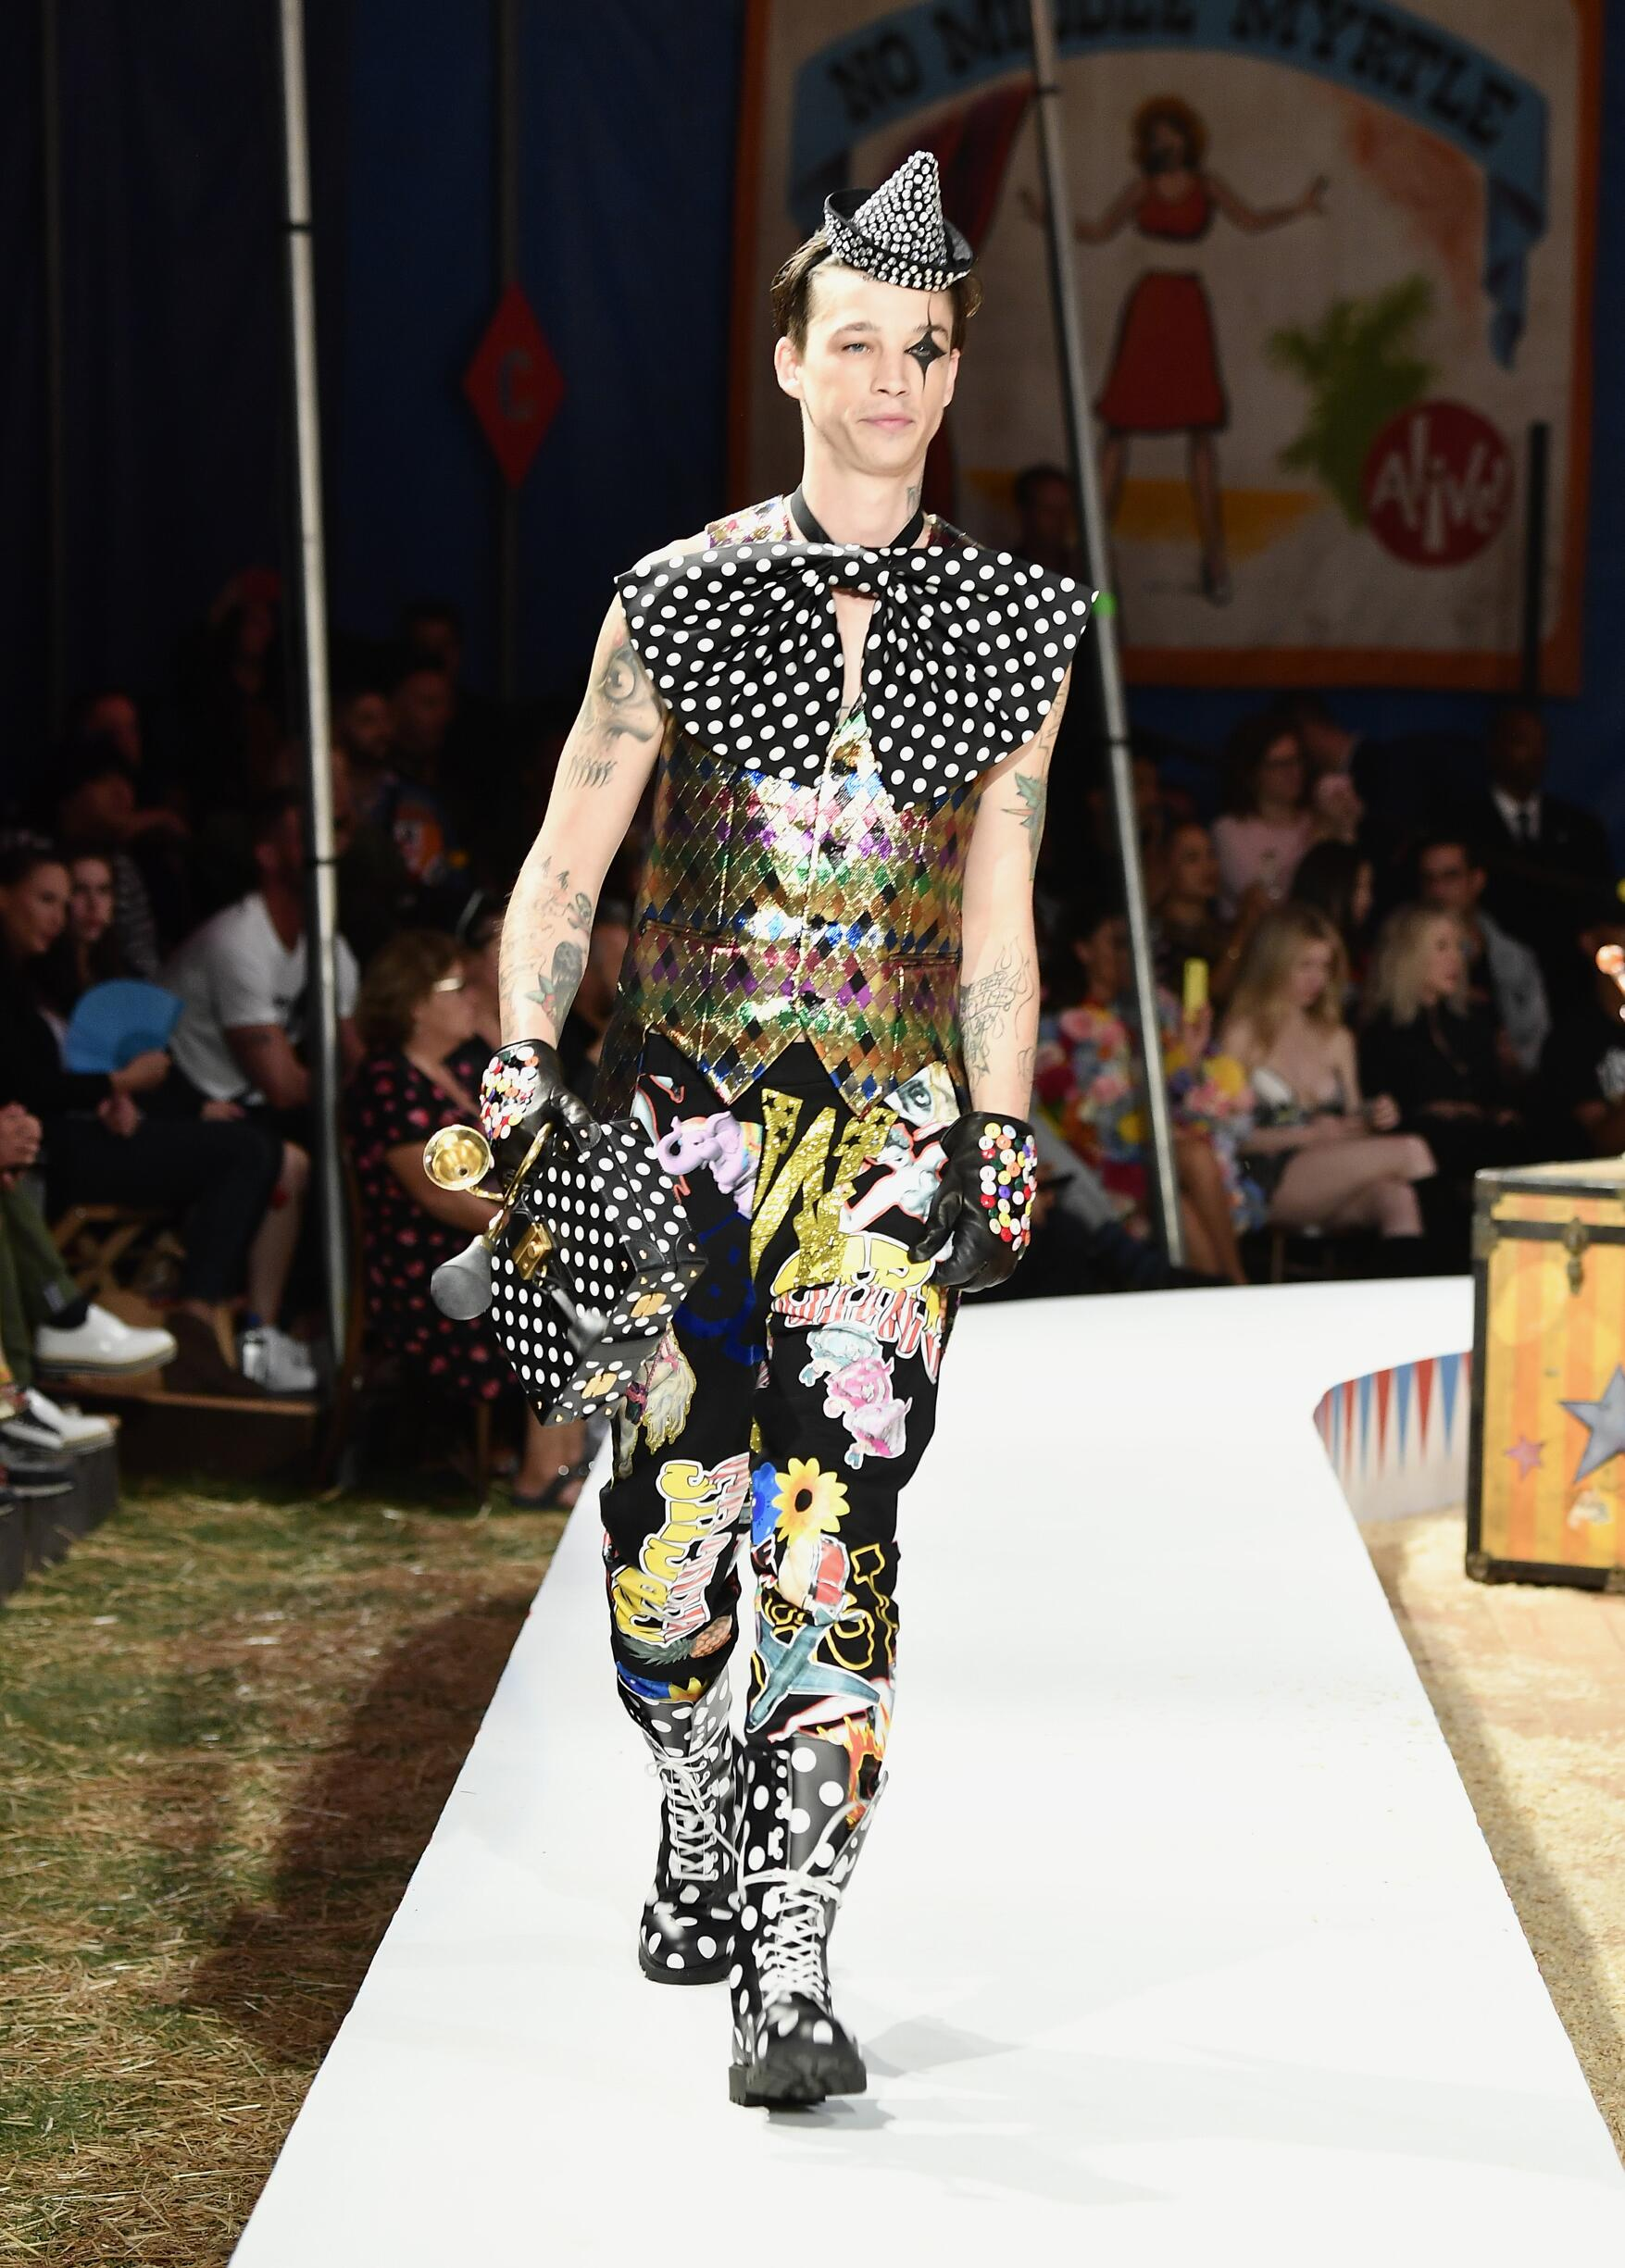 Moschino Spring Summer 2019 Menswear and Women's Resort Collection Look 24 Los Angeles